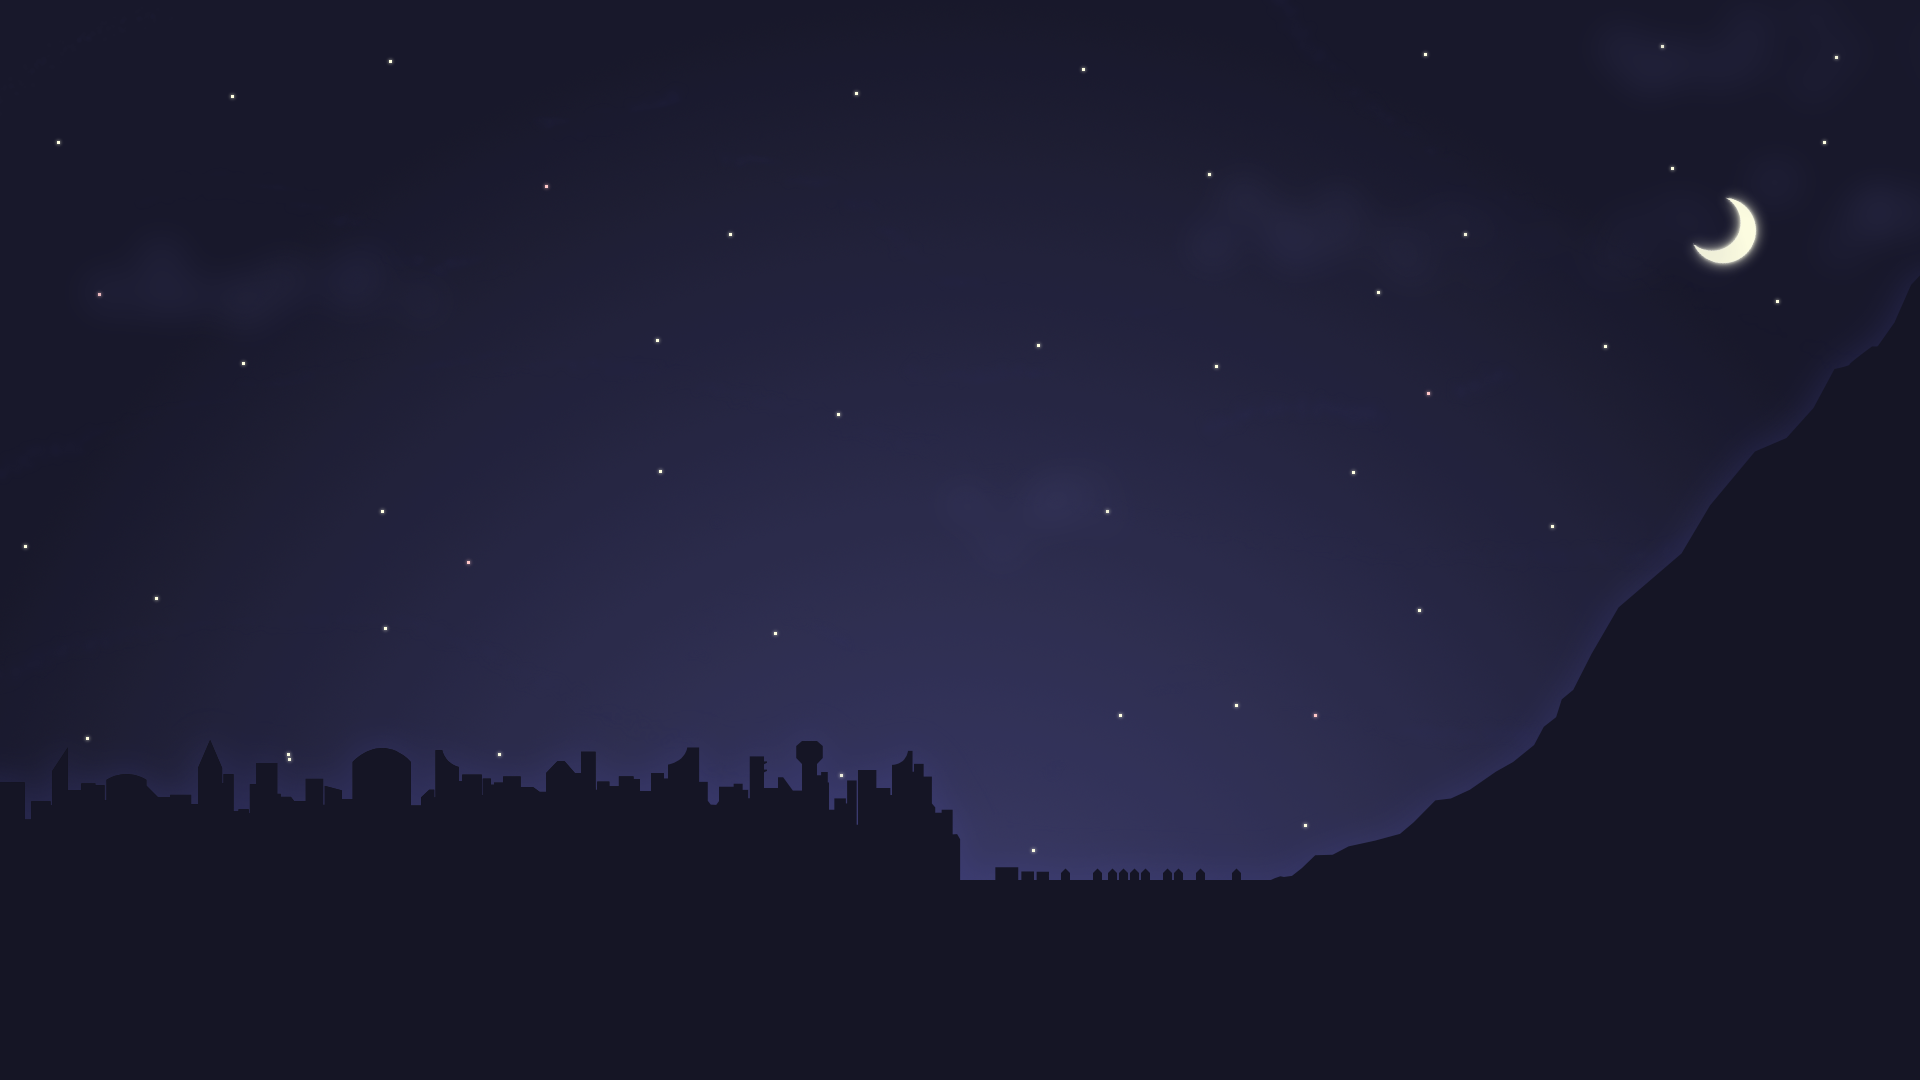 Night Sky Images For Backgrounds Desktop Free Sky Images Night Skies Free Food